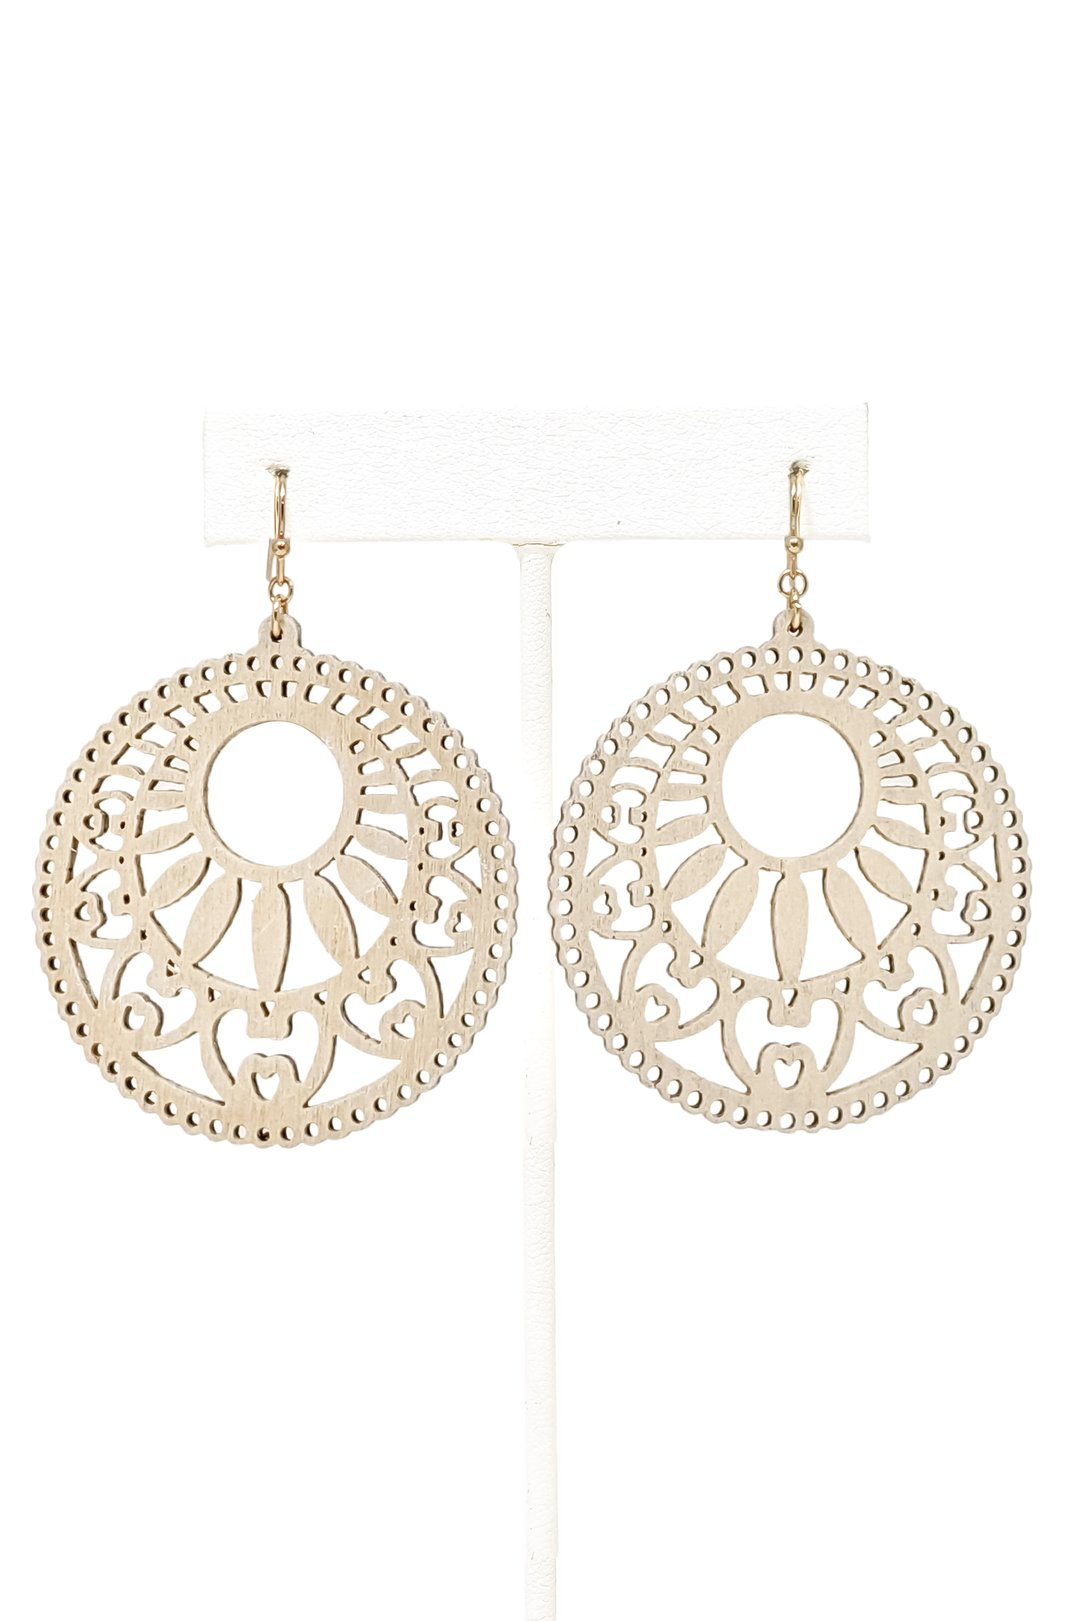 Ryley Earrings